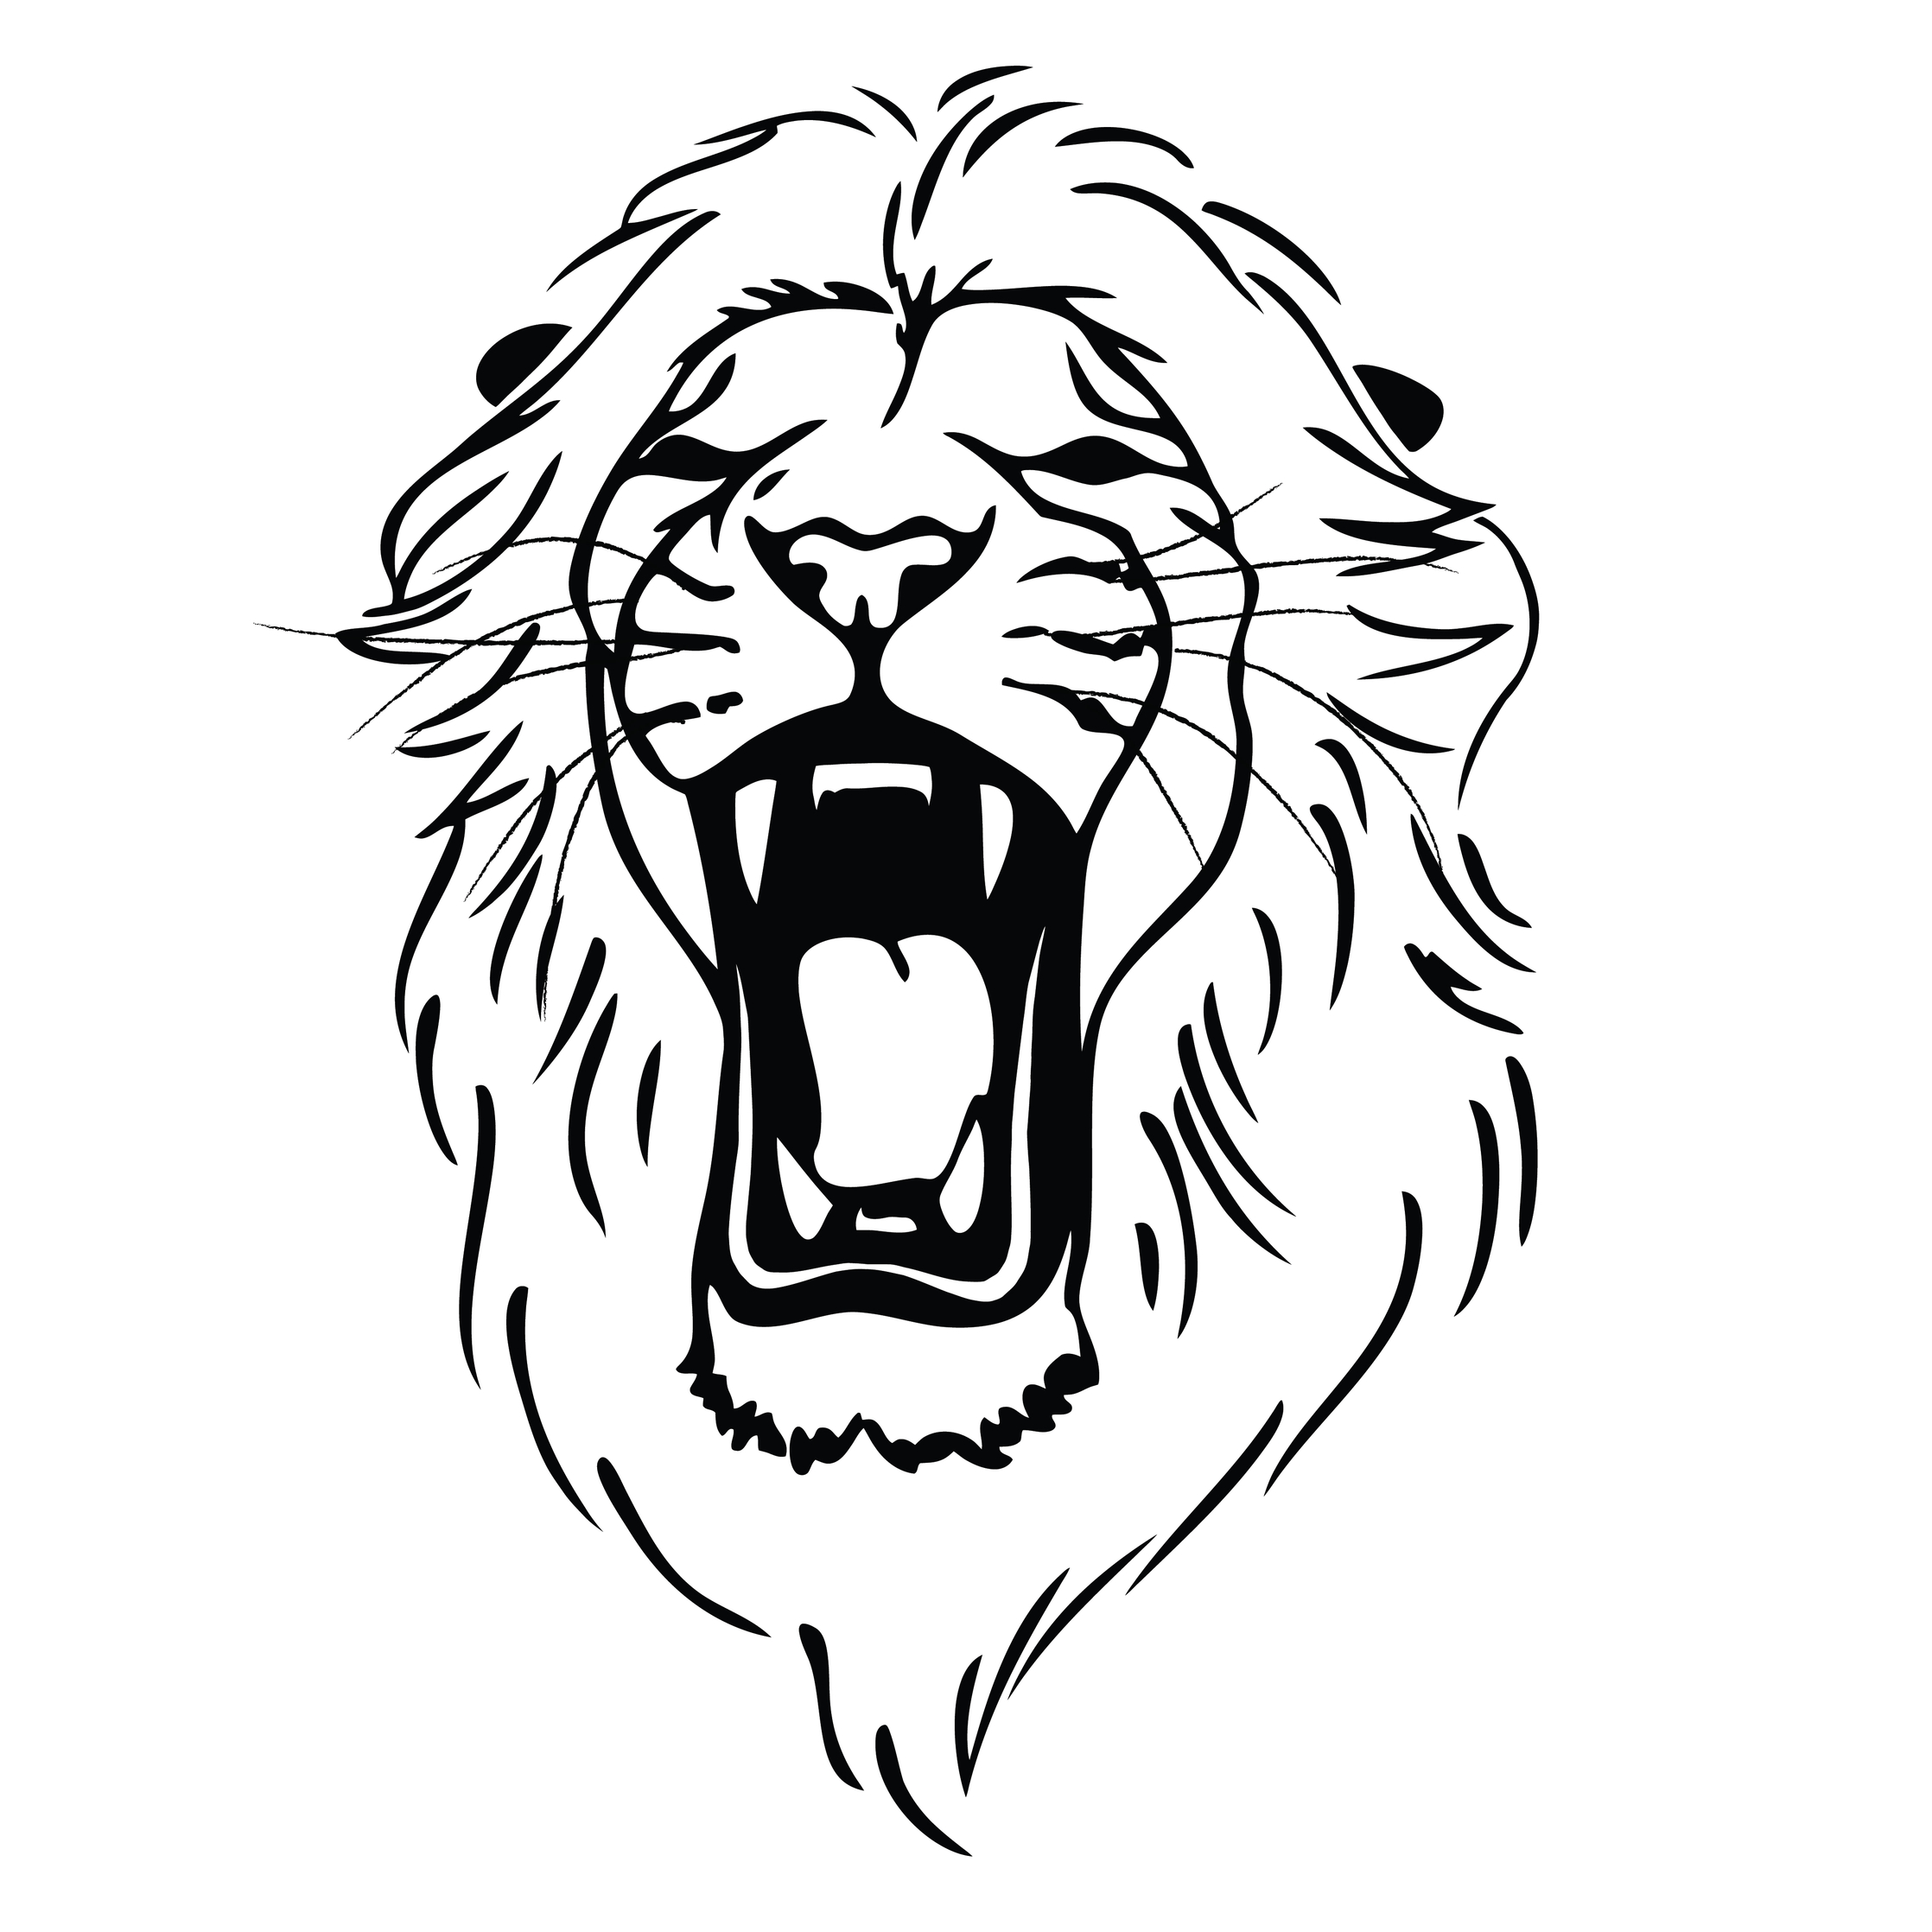 Roaring Lion Clip Art Black And White Roaring Lion Head Tattoo Clipart Panda Free Clipart Images